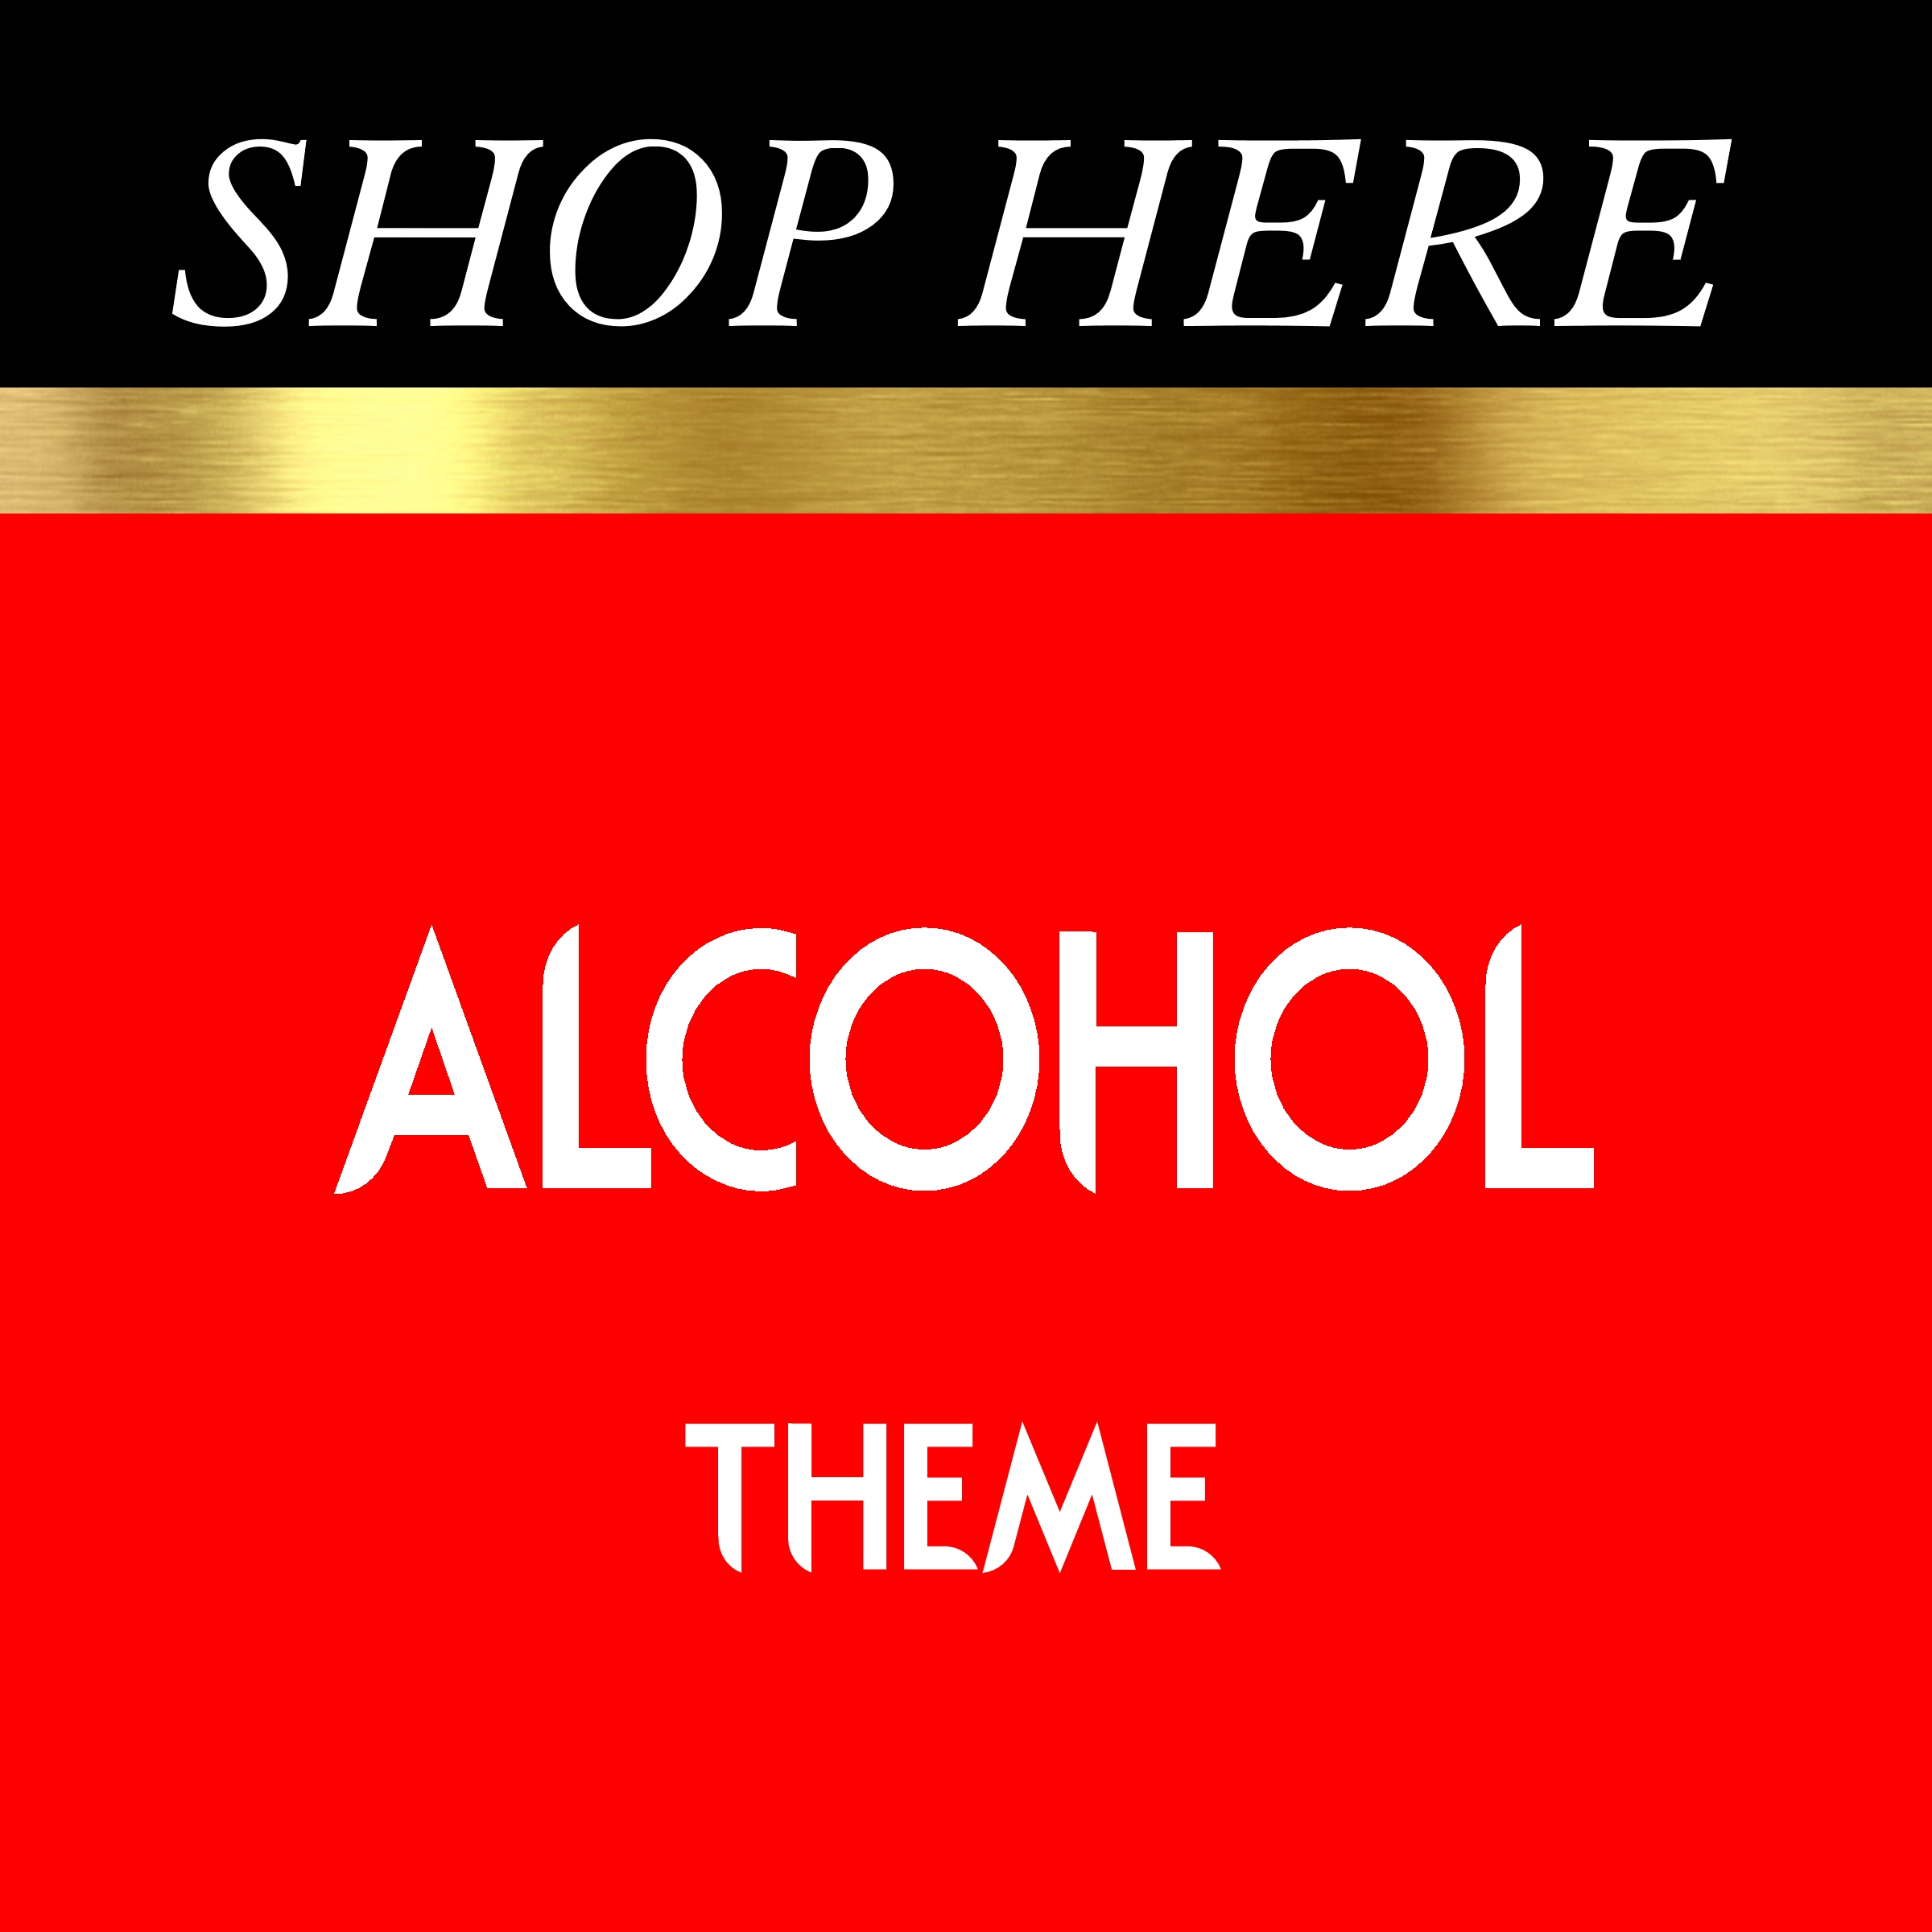 Alcohol Theme